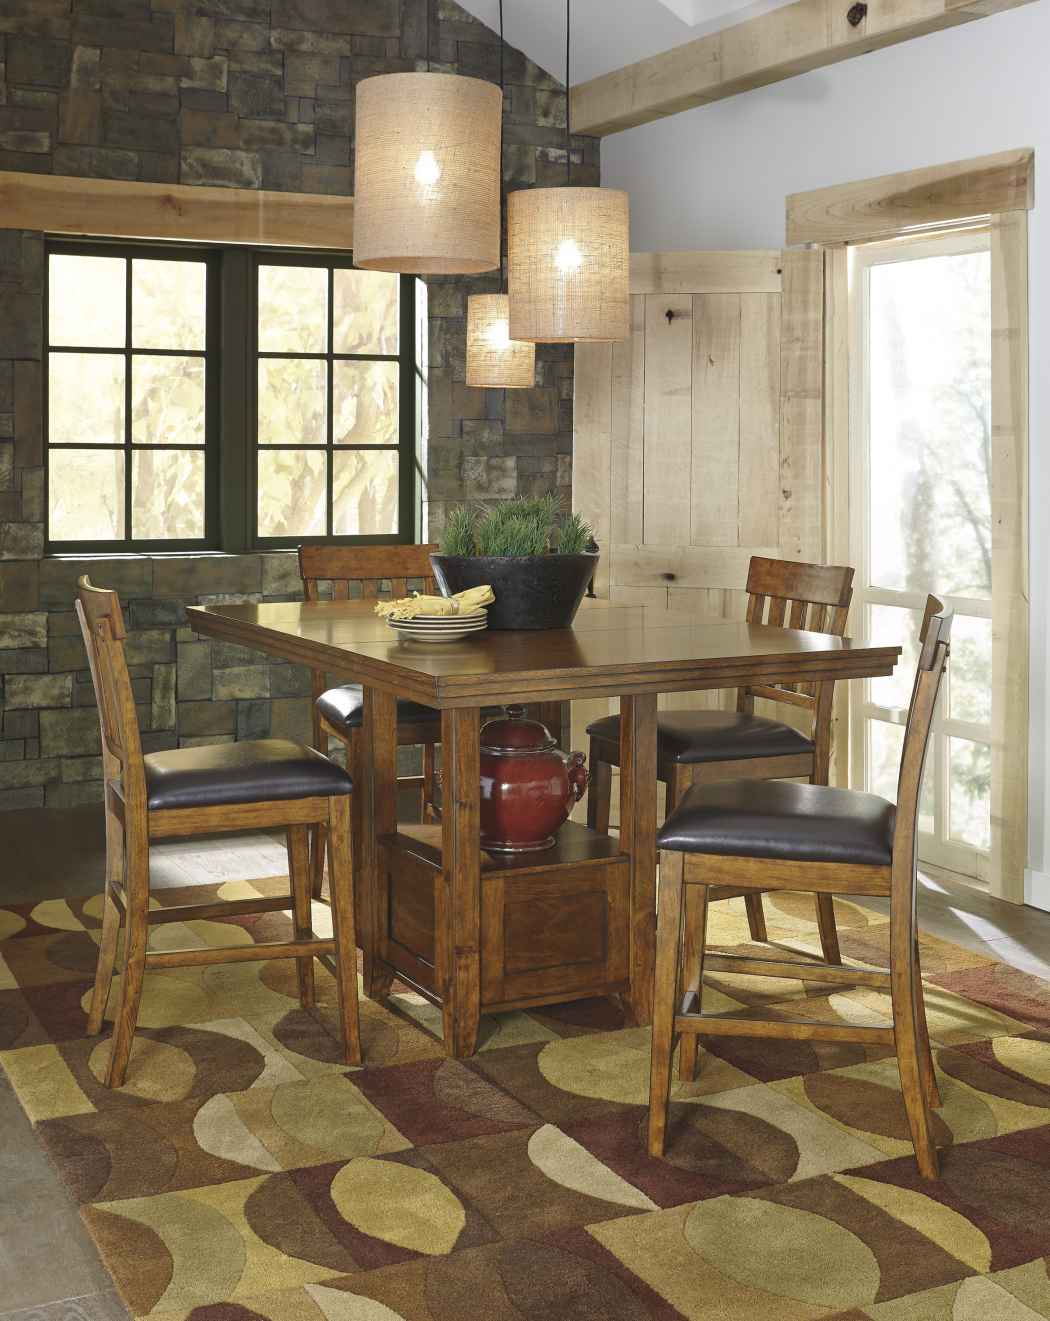 Ashley d594 42 ralene rectangular dining room counter extensionension table - Ashley dining rooms ...